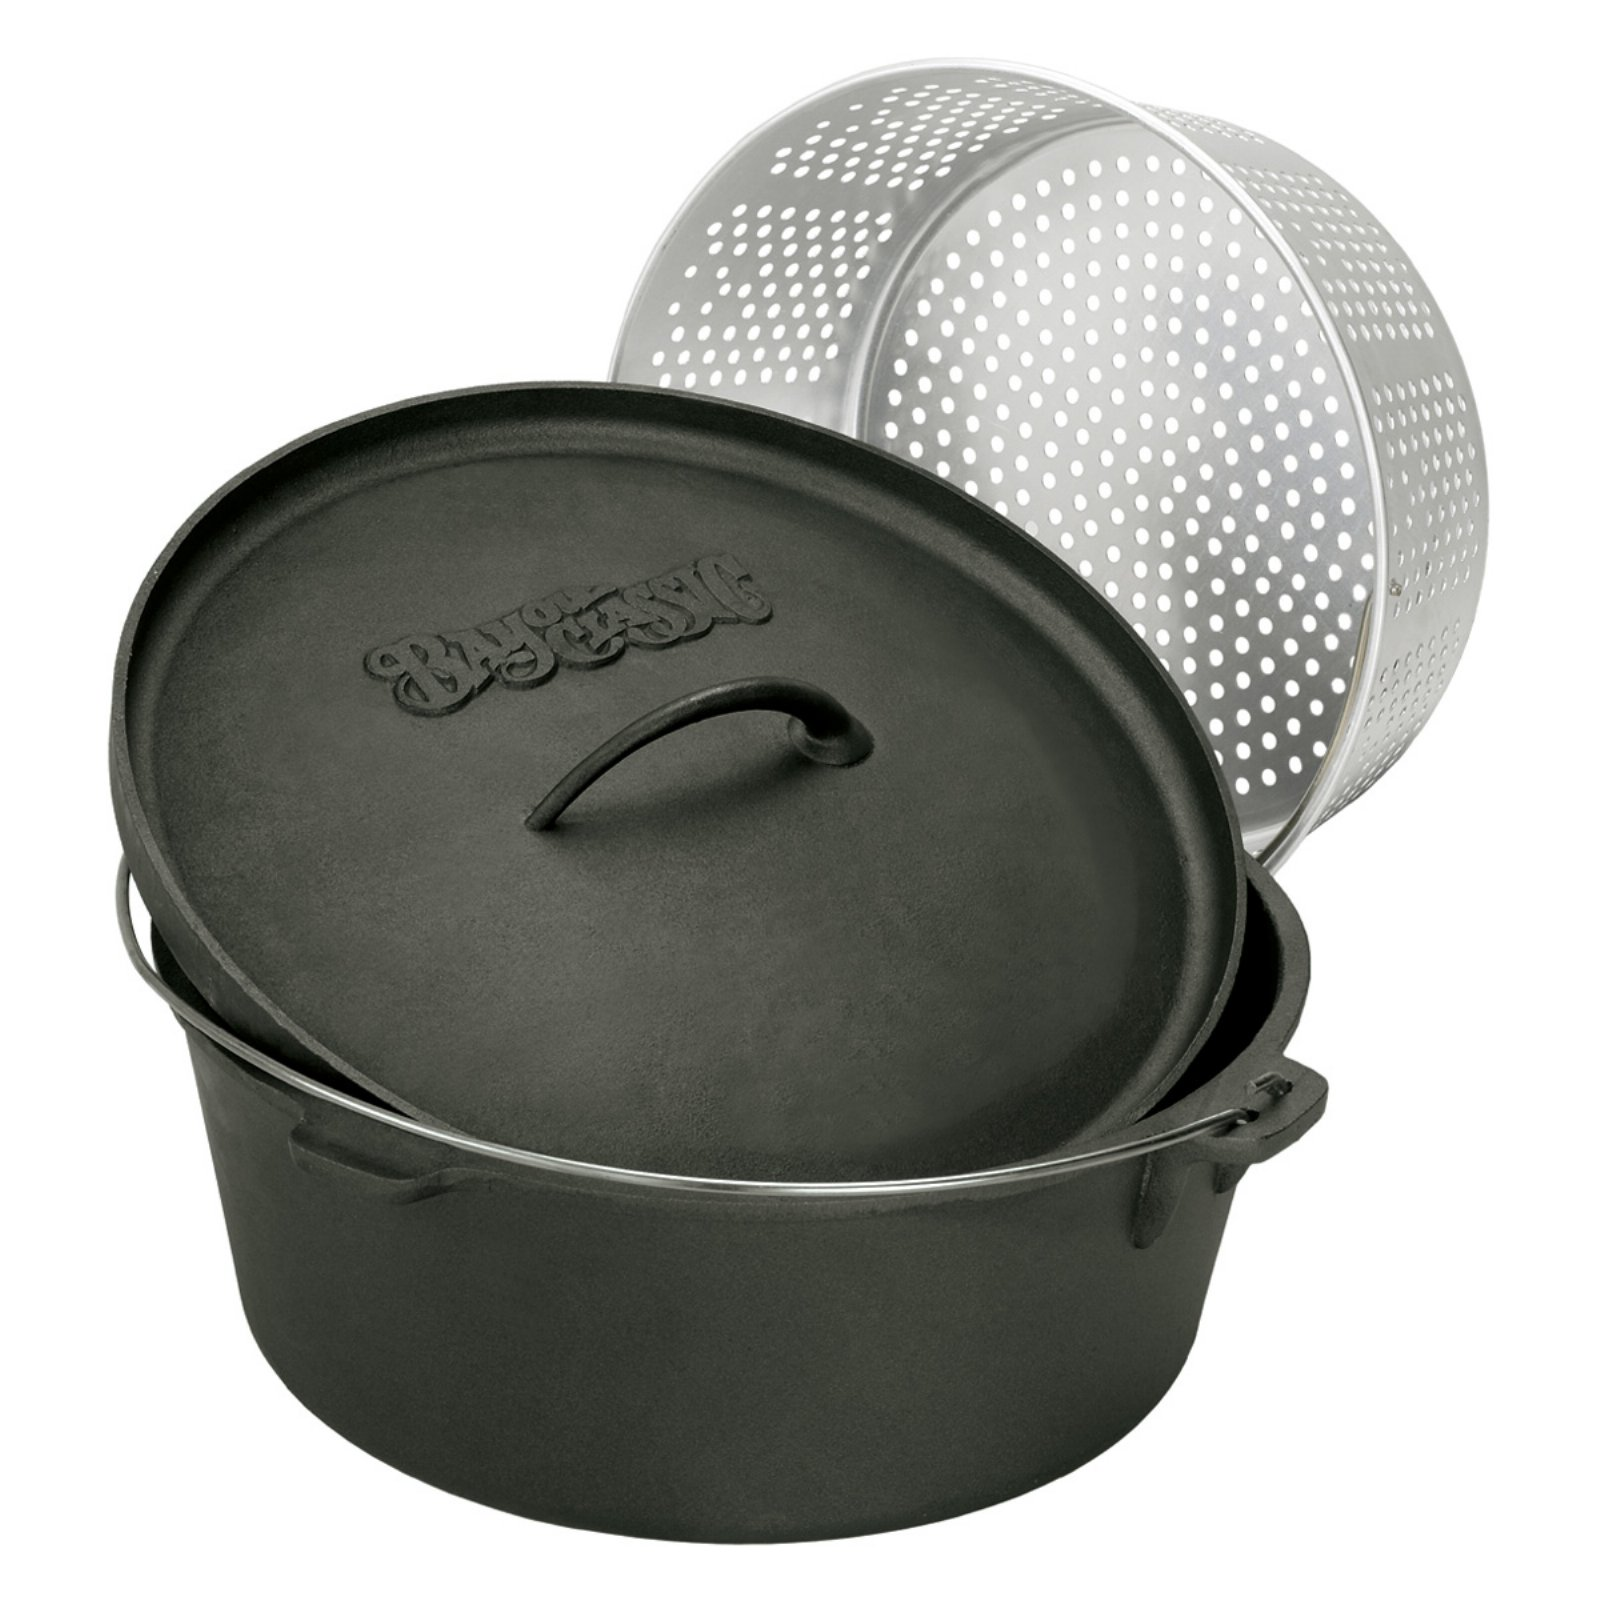 Bayou Classics Cast Iron Dutch Oven with Aluminum Basket by Bayou Classic